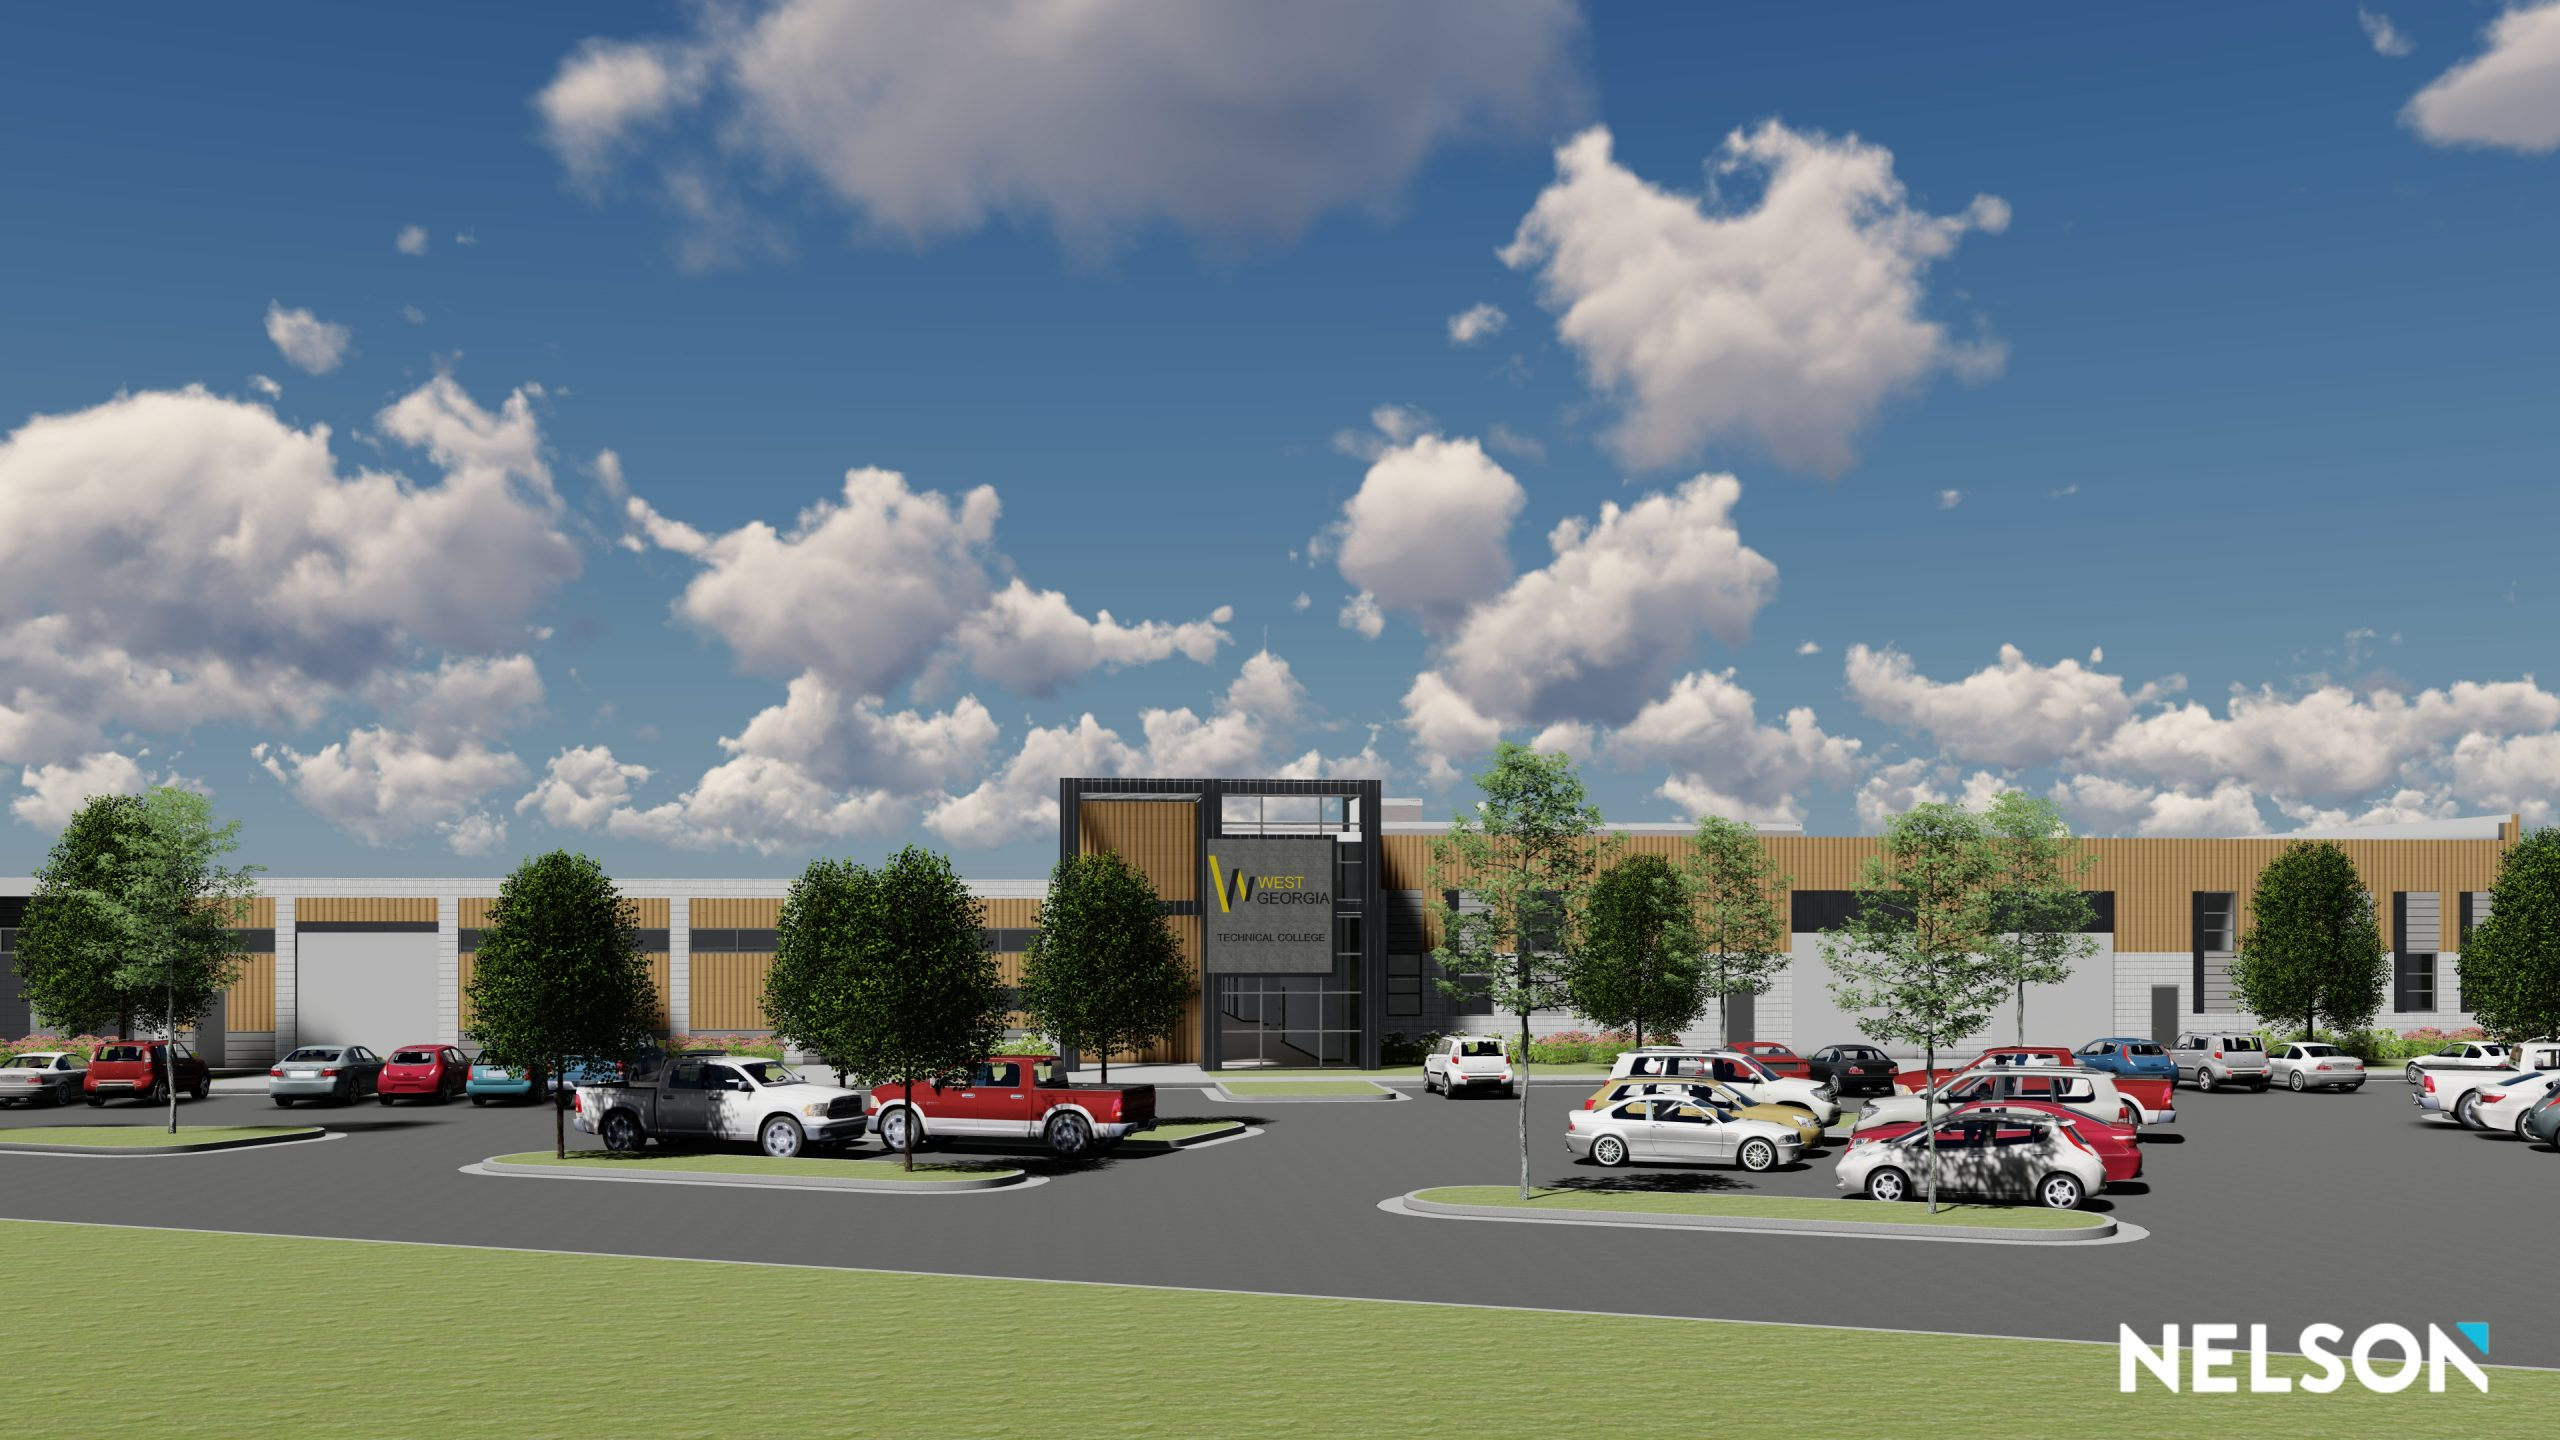 WGTC New Campus Technical Building concept with building, parking lot, and trees.